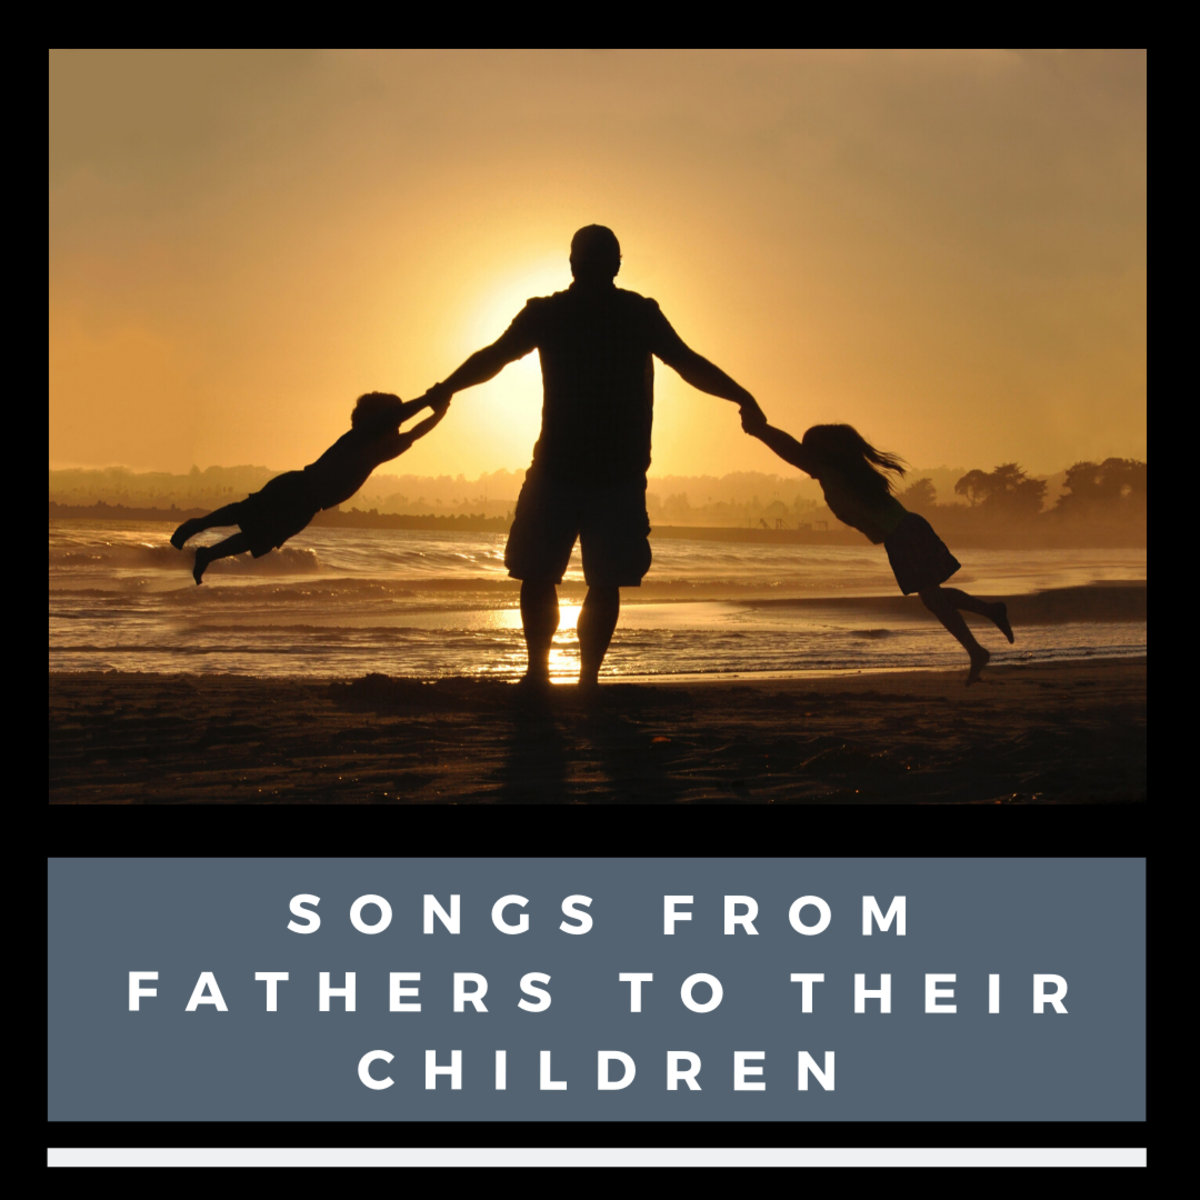 These songs perfectly speak to that special kind of love a dad can have for his kids.